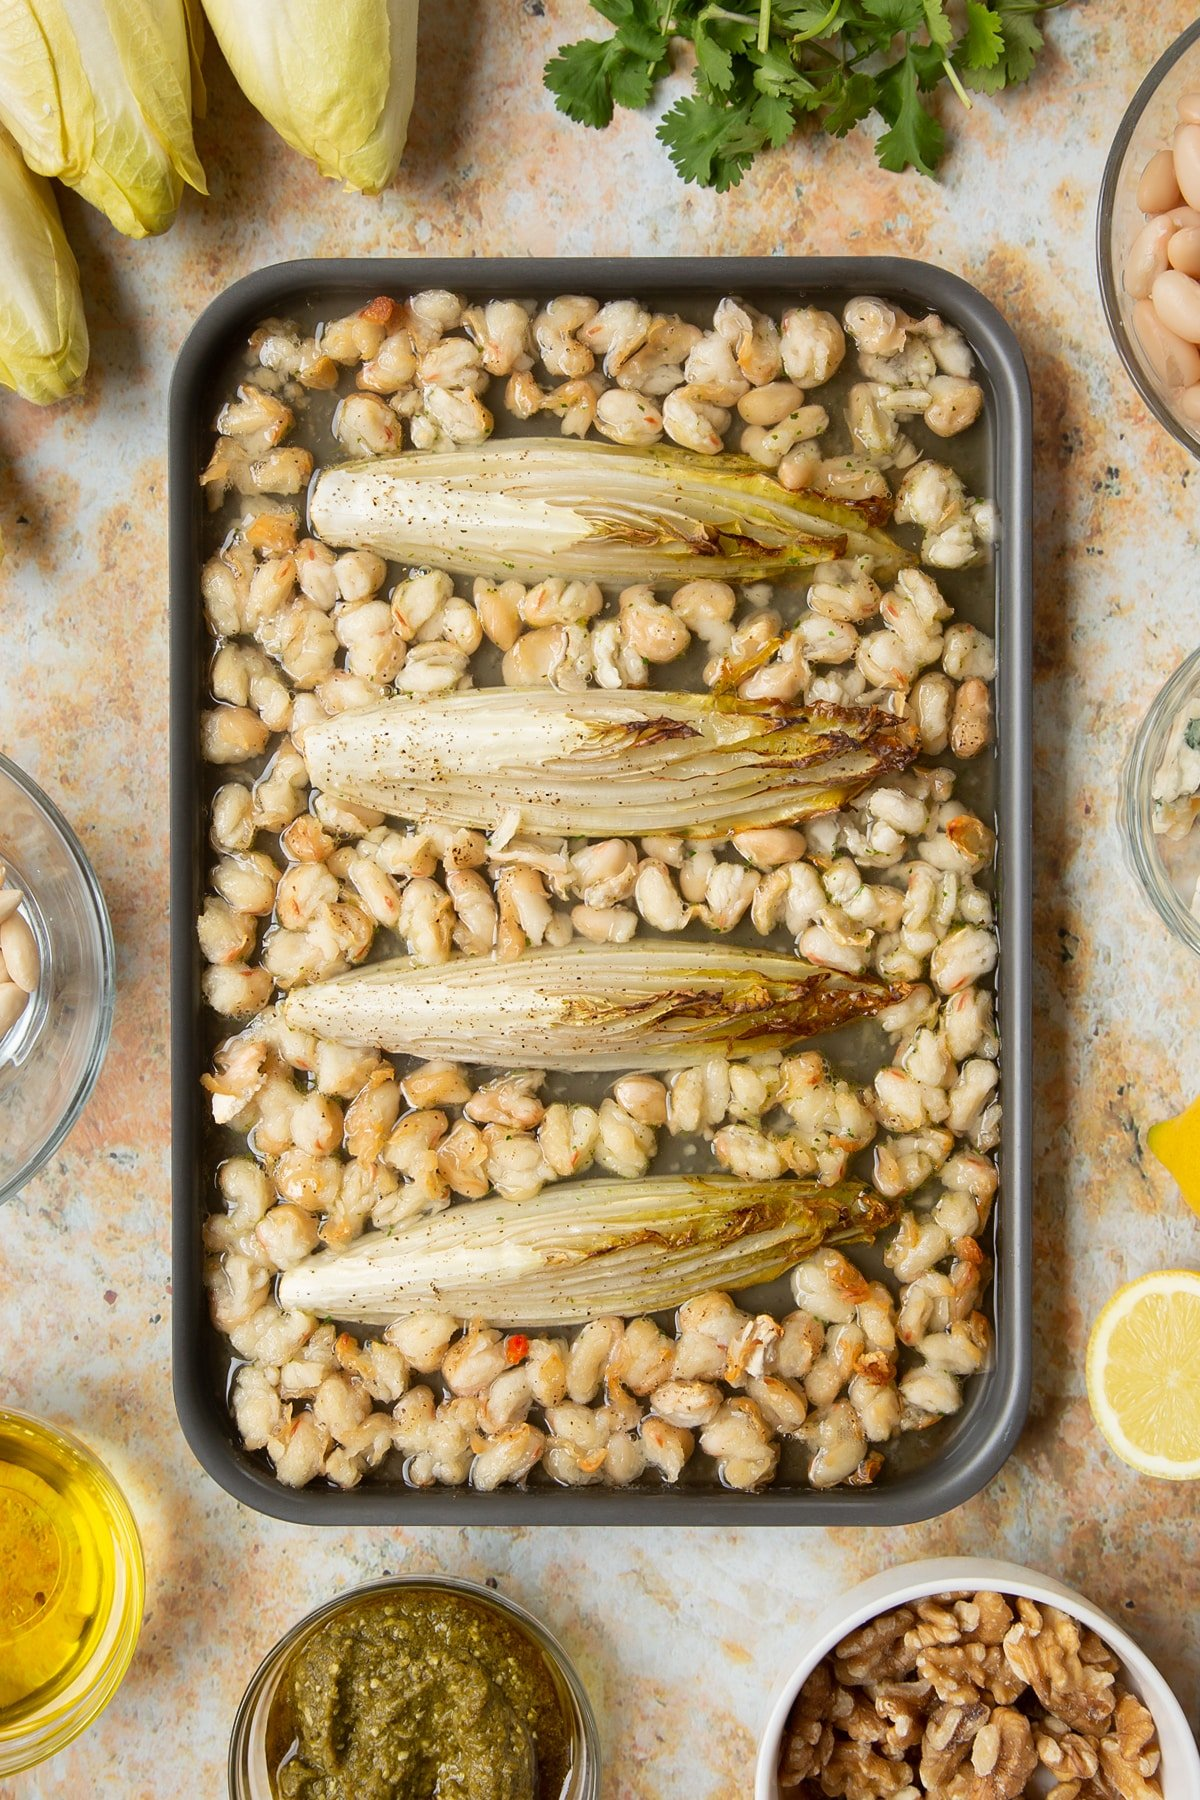 Chicory and cannellini beans braising on a tray.